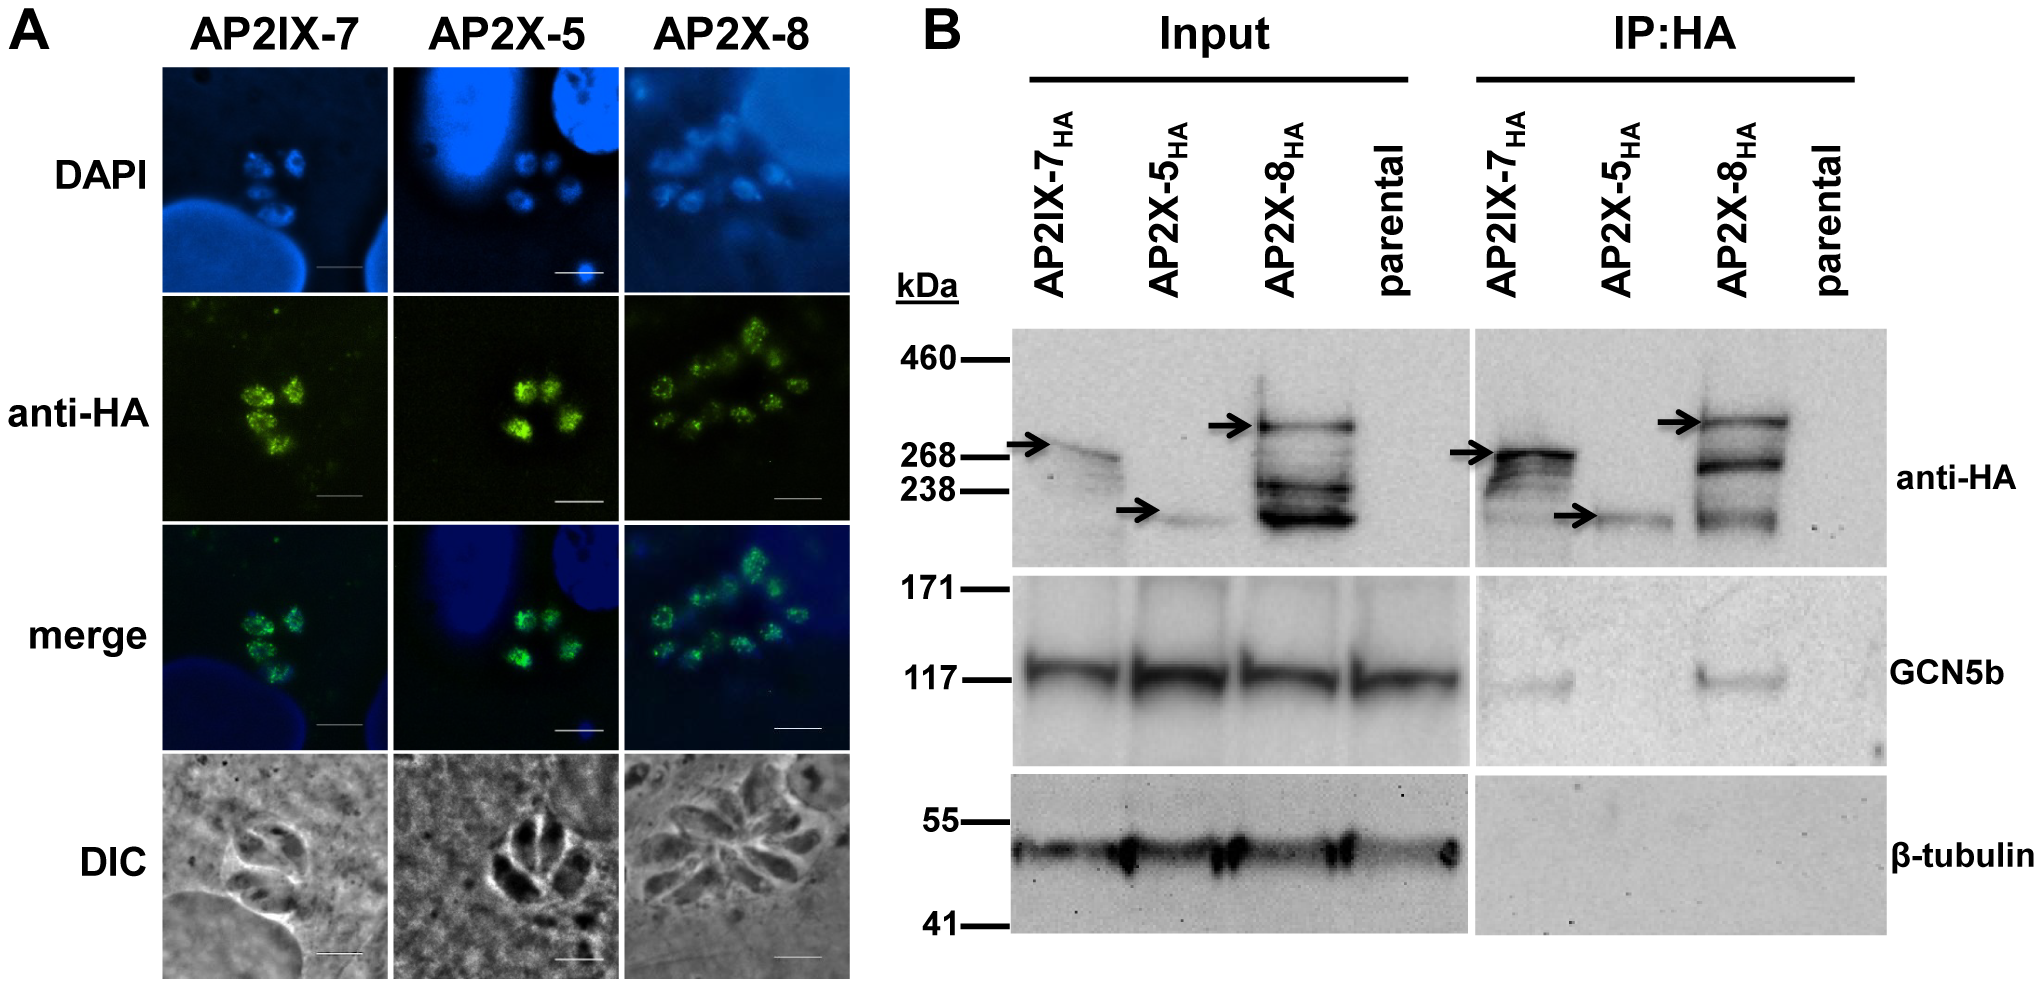 Reciprocal immunoprecipitation confirms the <i>in vivo</i> interaction of GCN5b with endogenously HA-tagged AP2IX-7 and AP2X-8.